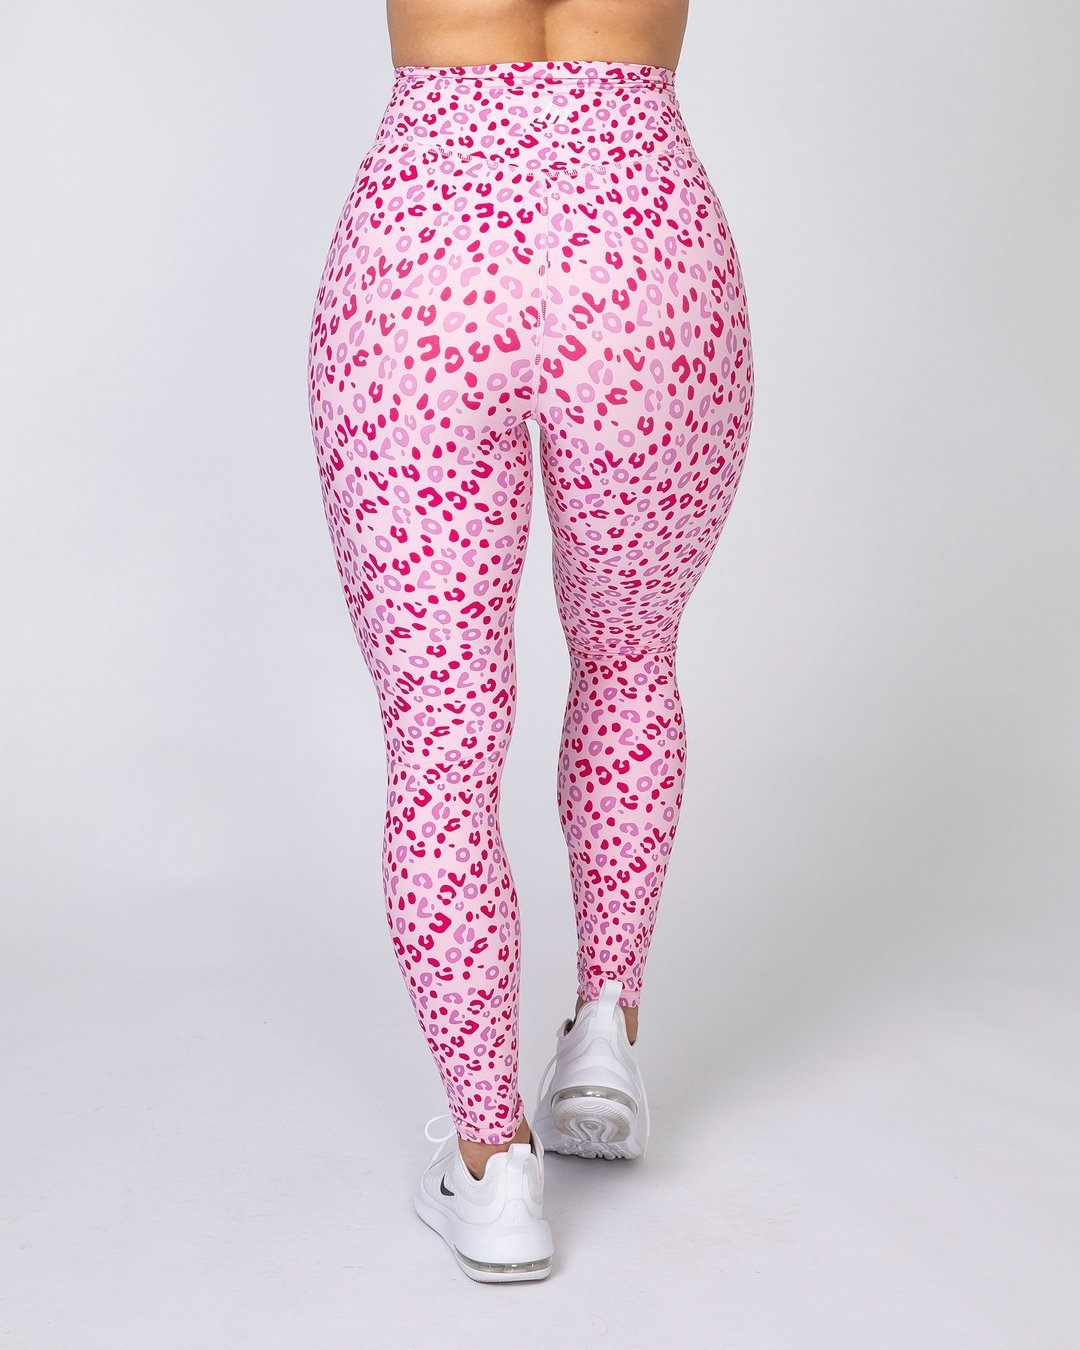 Muscle Nation Motion Full Length Leggings - Pink Leopard